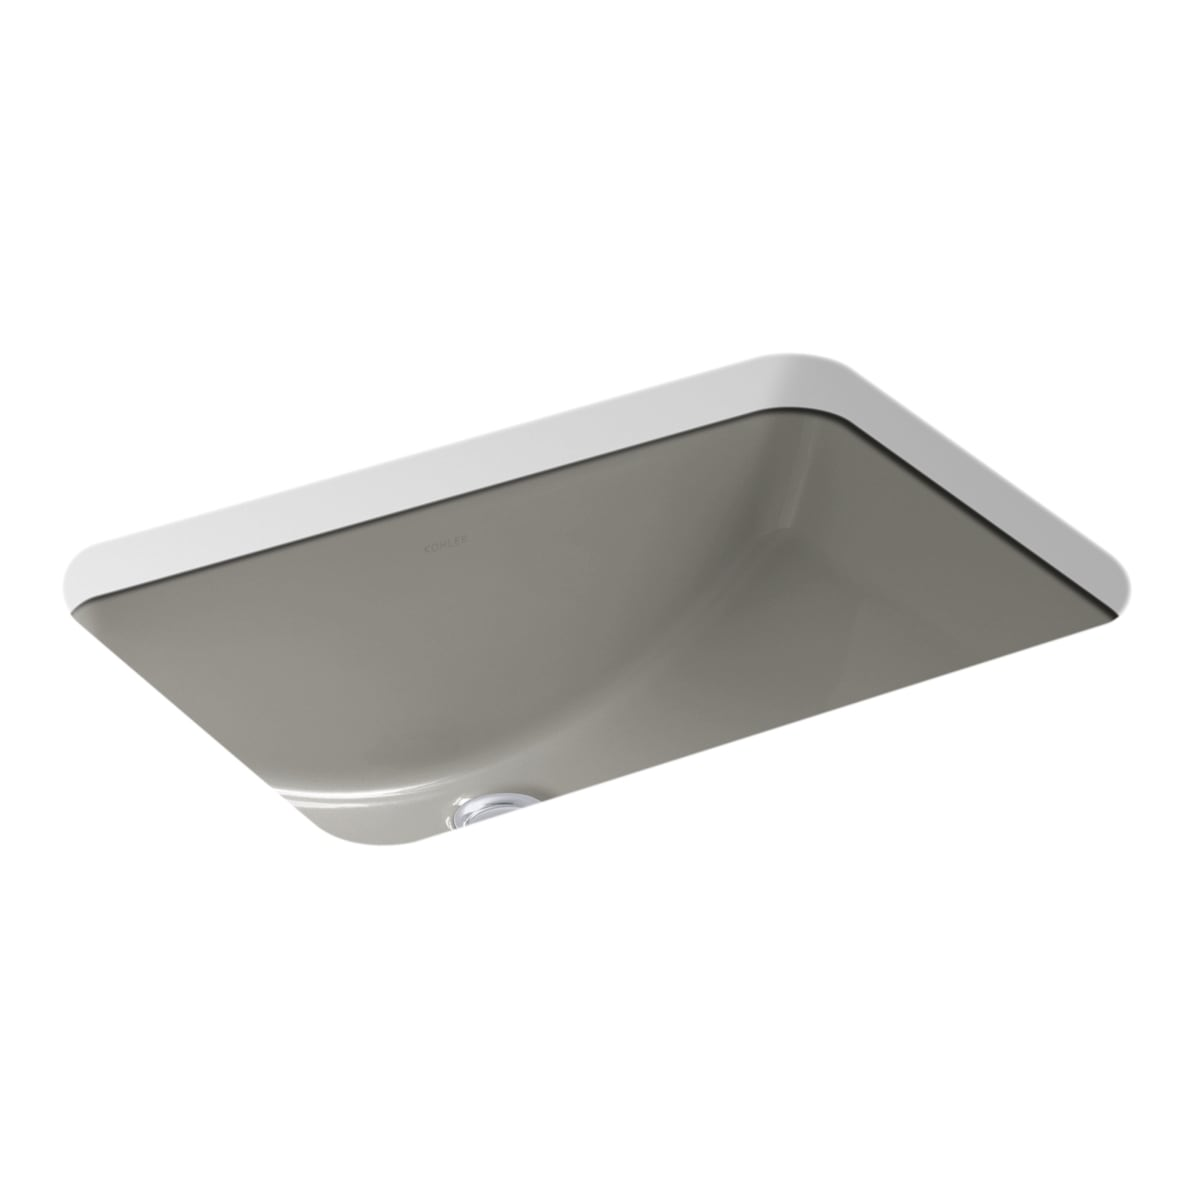 "Kohler K-2214-0 White Ladena 20-7/8"" x 14-3/8"" x 8-1/8"" Undermount Bathroom  Sink with Overflow - Faucet.com"